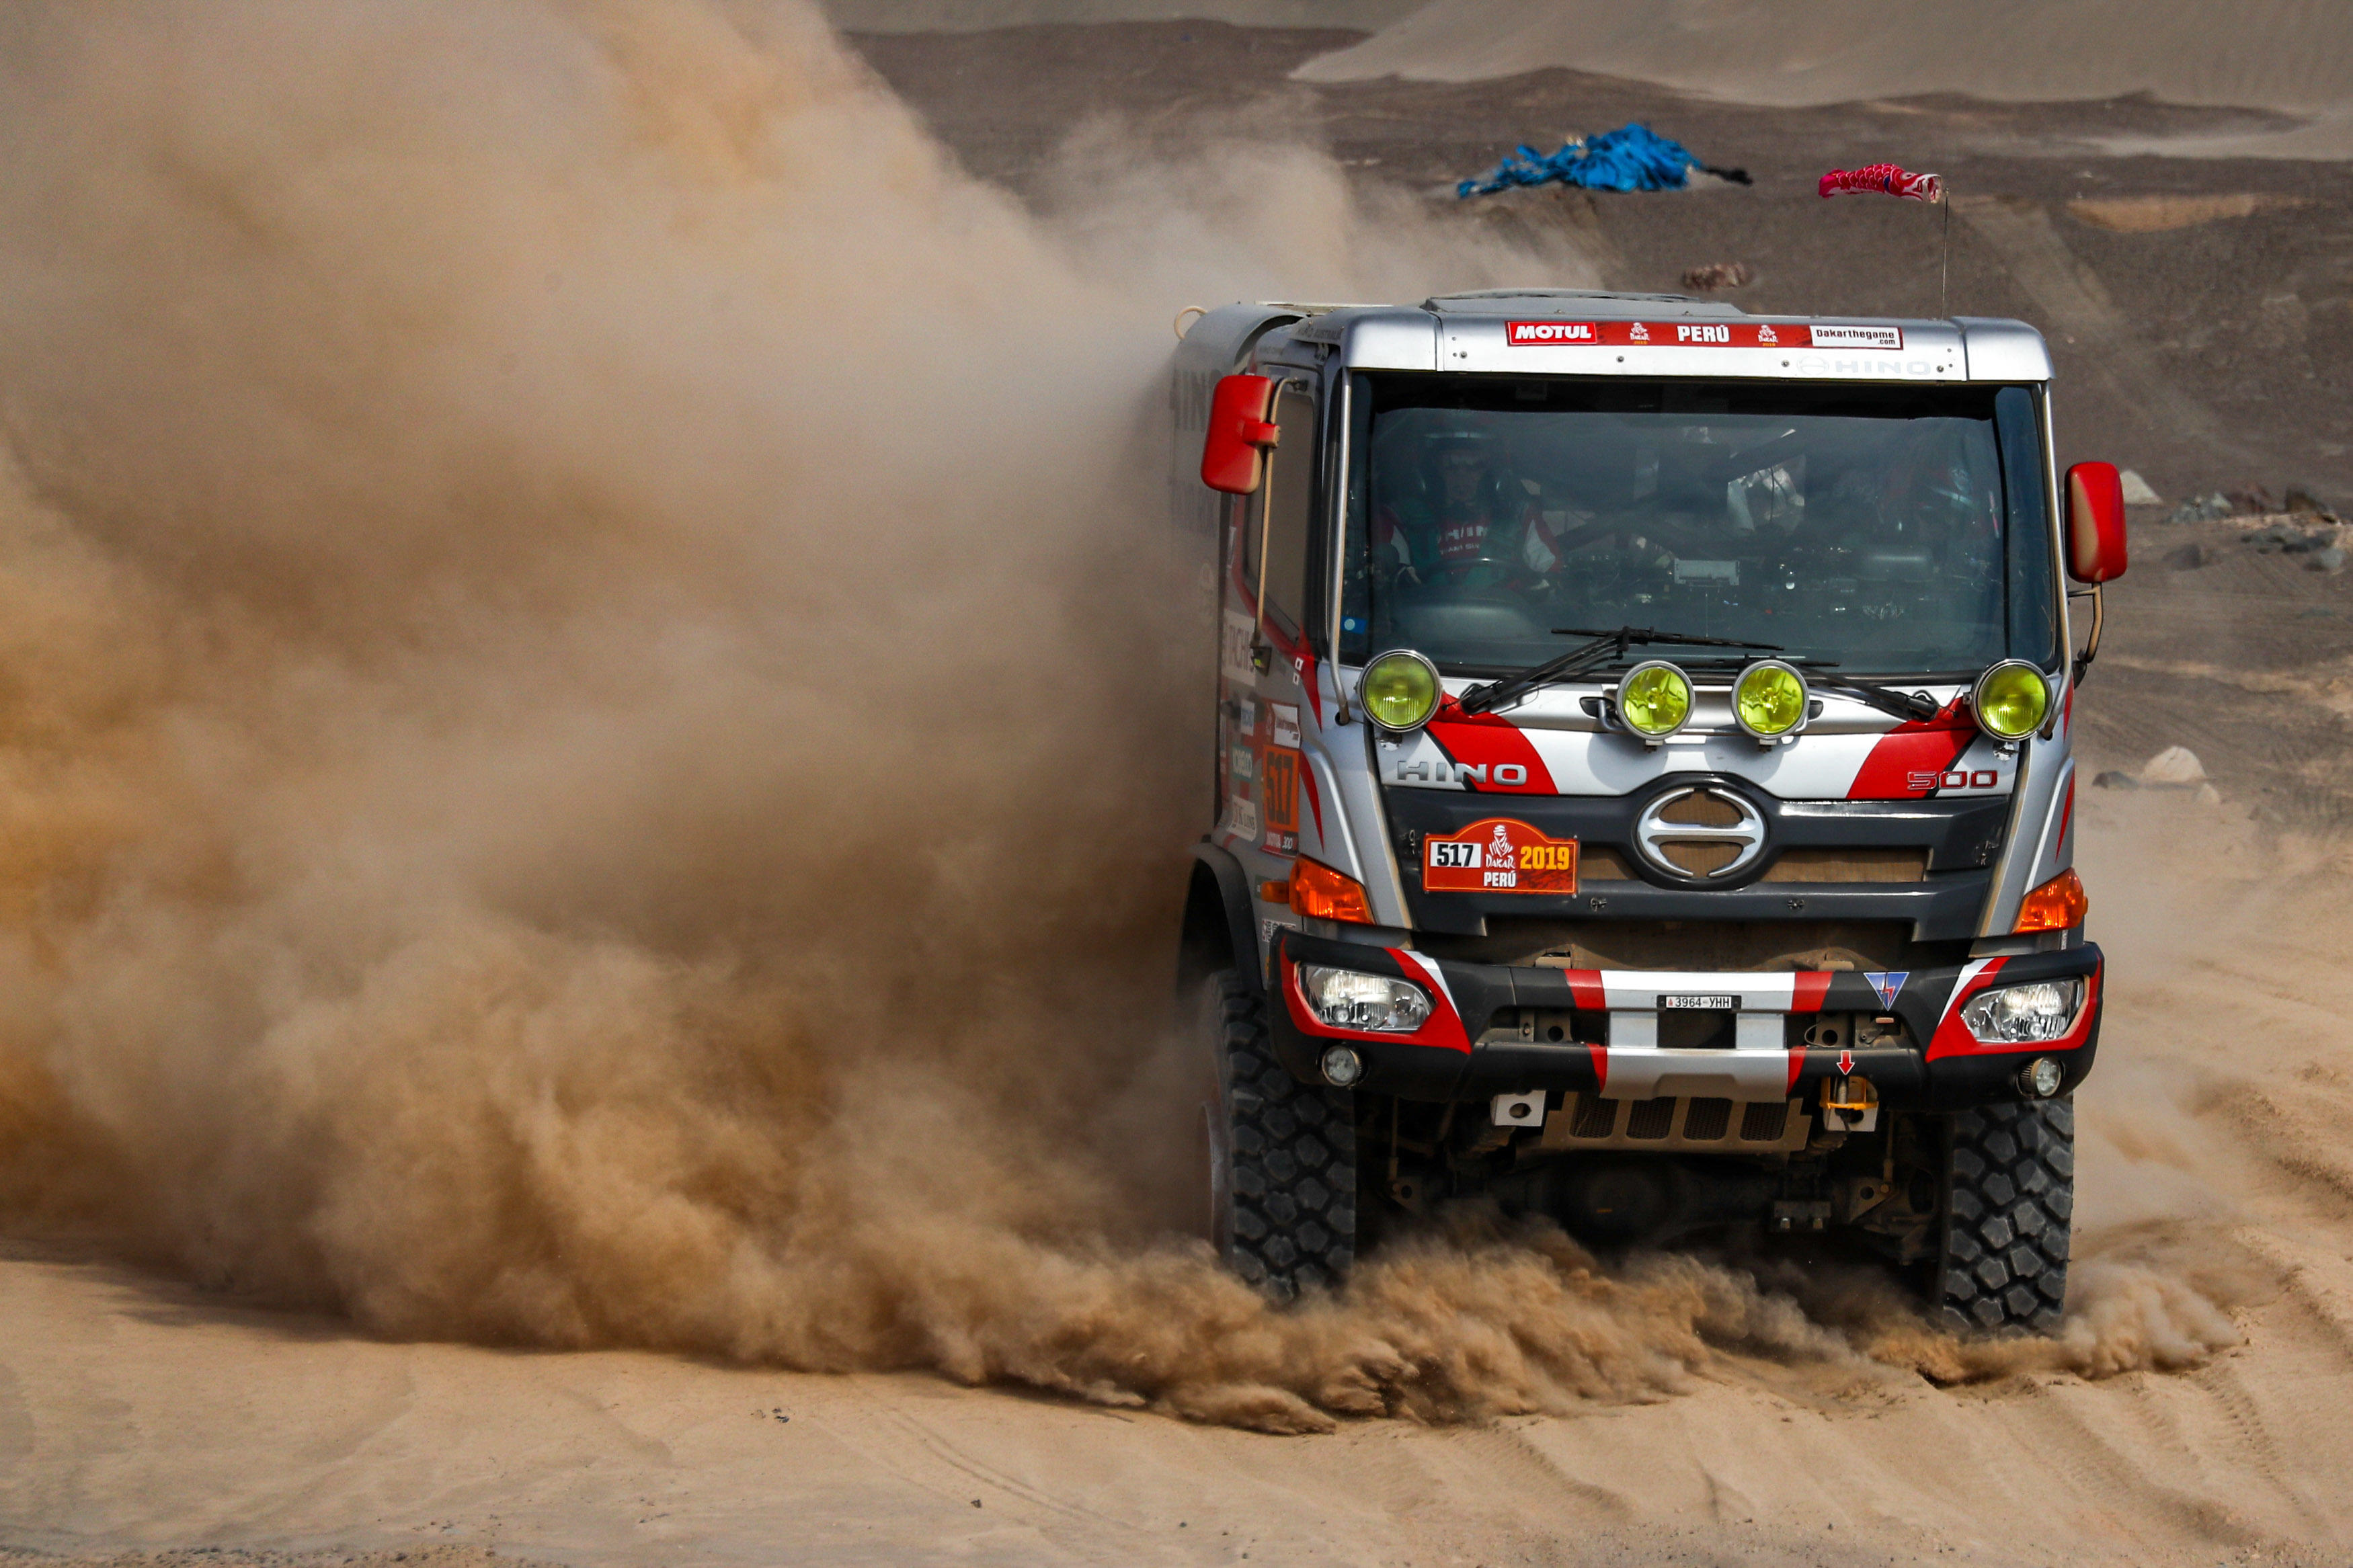 [DAY 8: Stage 6] First Day of the Second Week Features the Longest Stage of the Event. Team's Truck Overcomes Dunes to Finish in 9th Place.